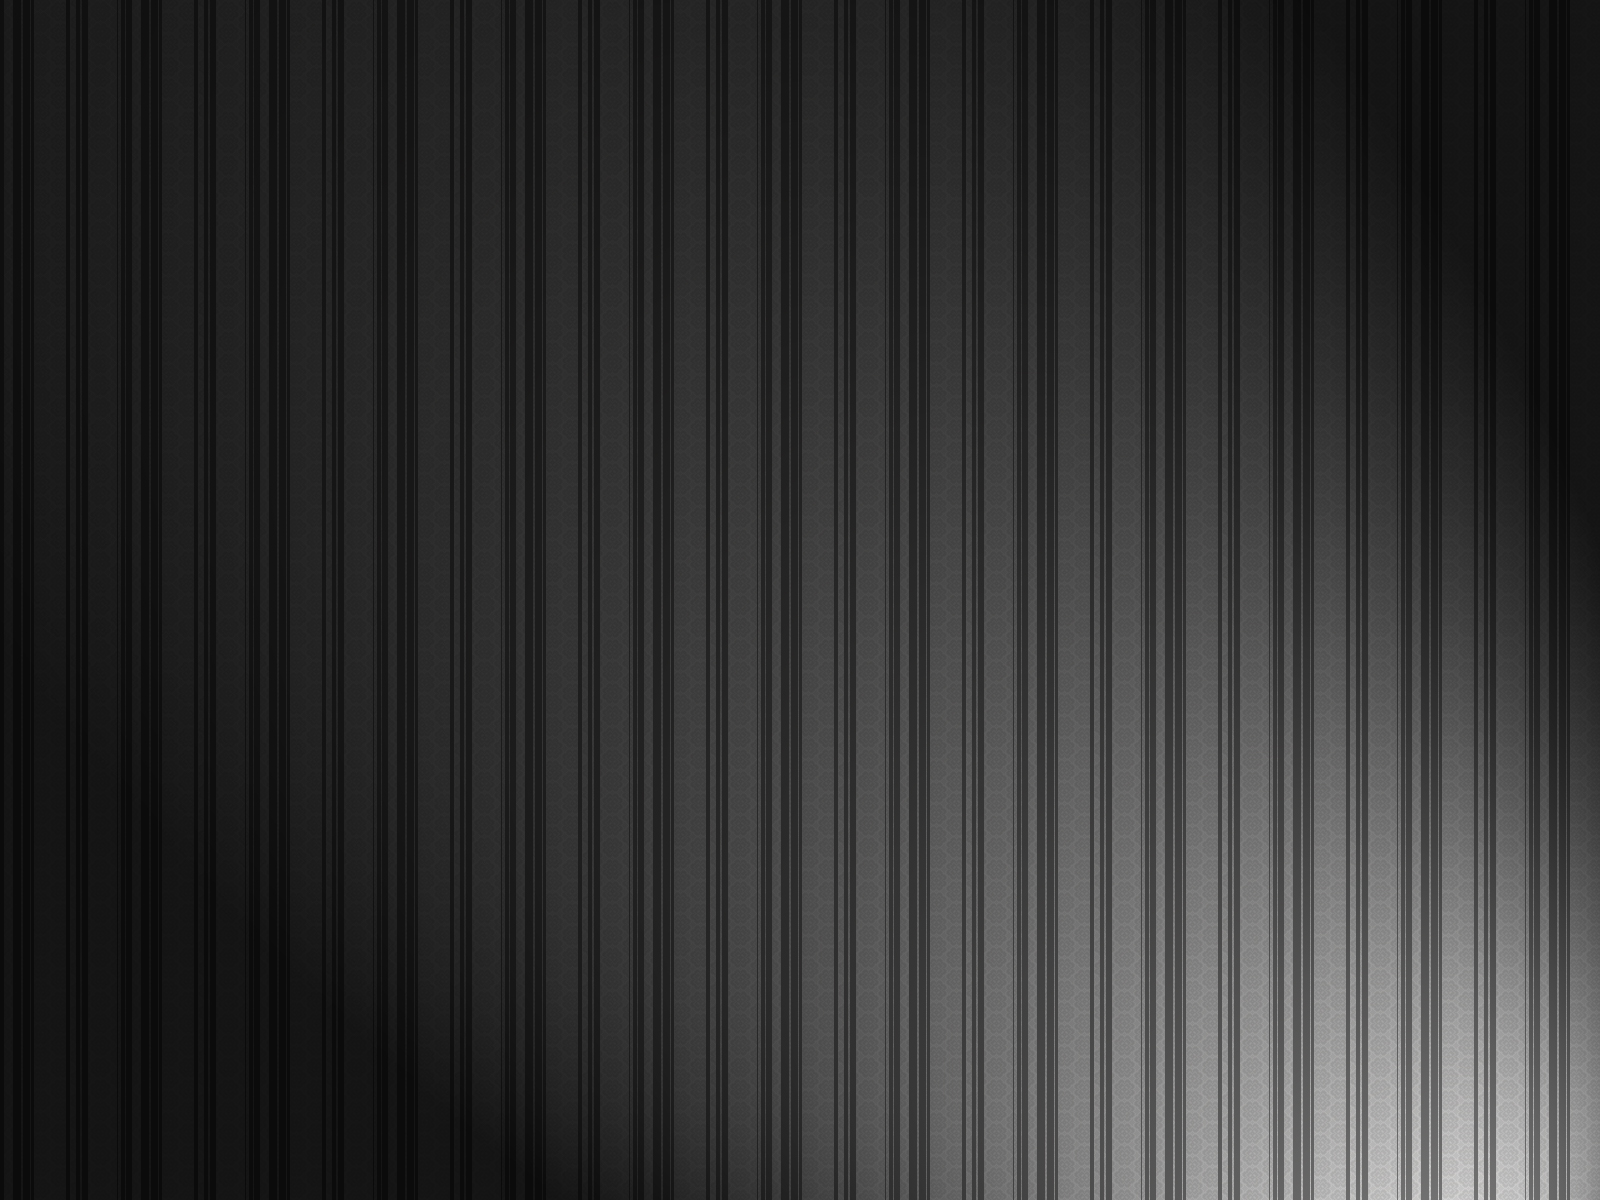 Trendy wallpaper free trendy wallpaper background u free for Cheap black wallpaper